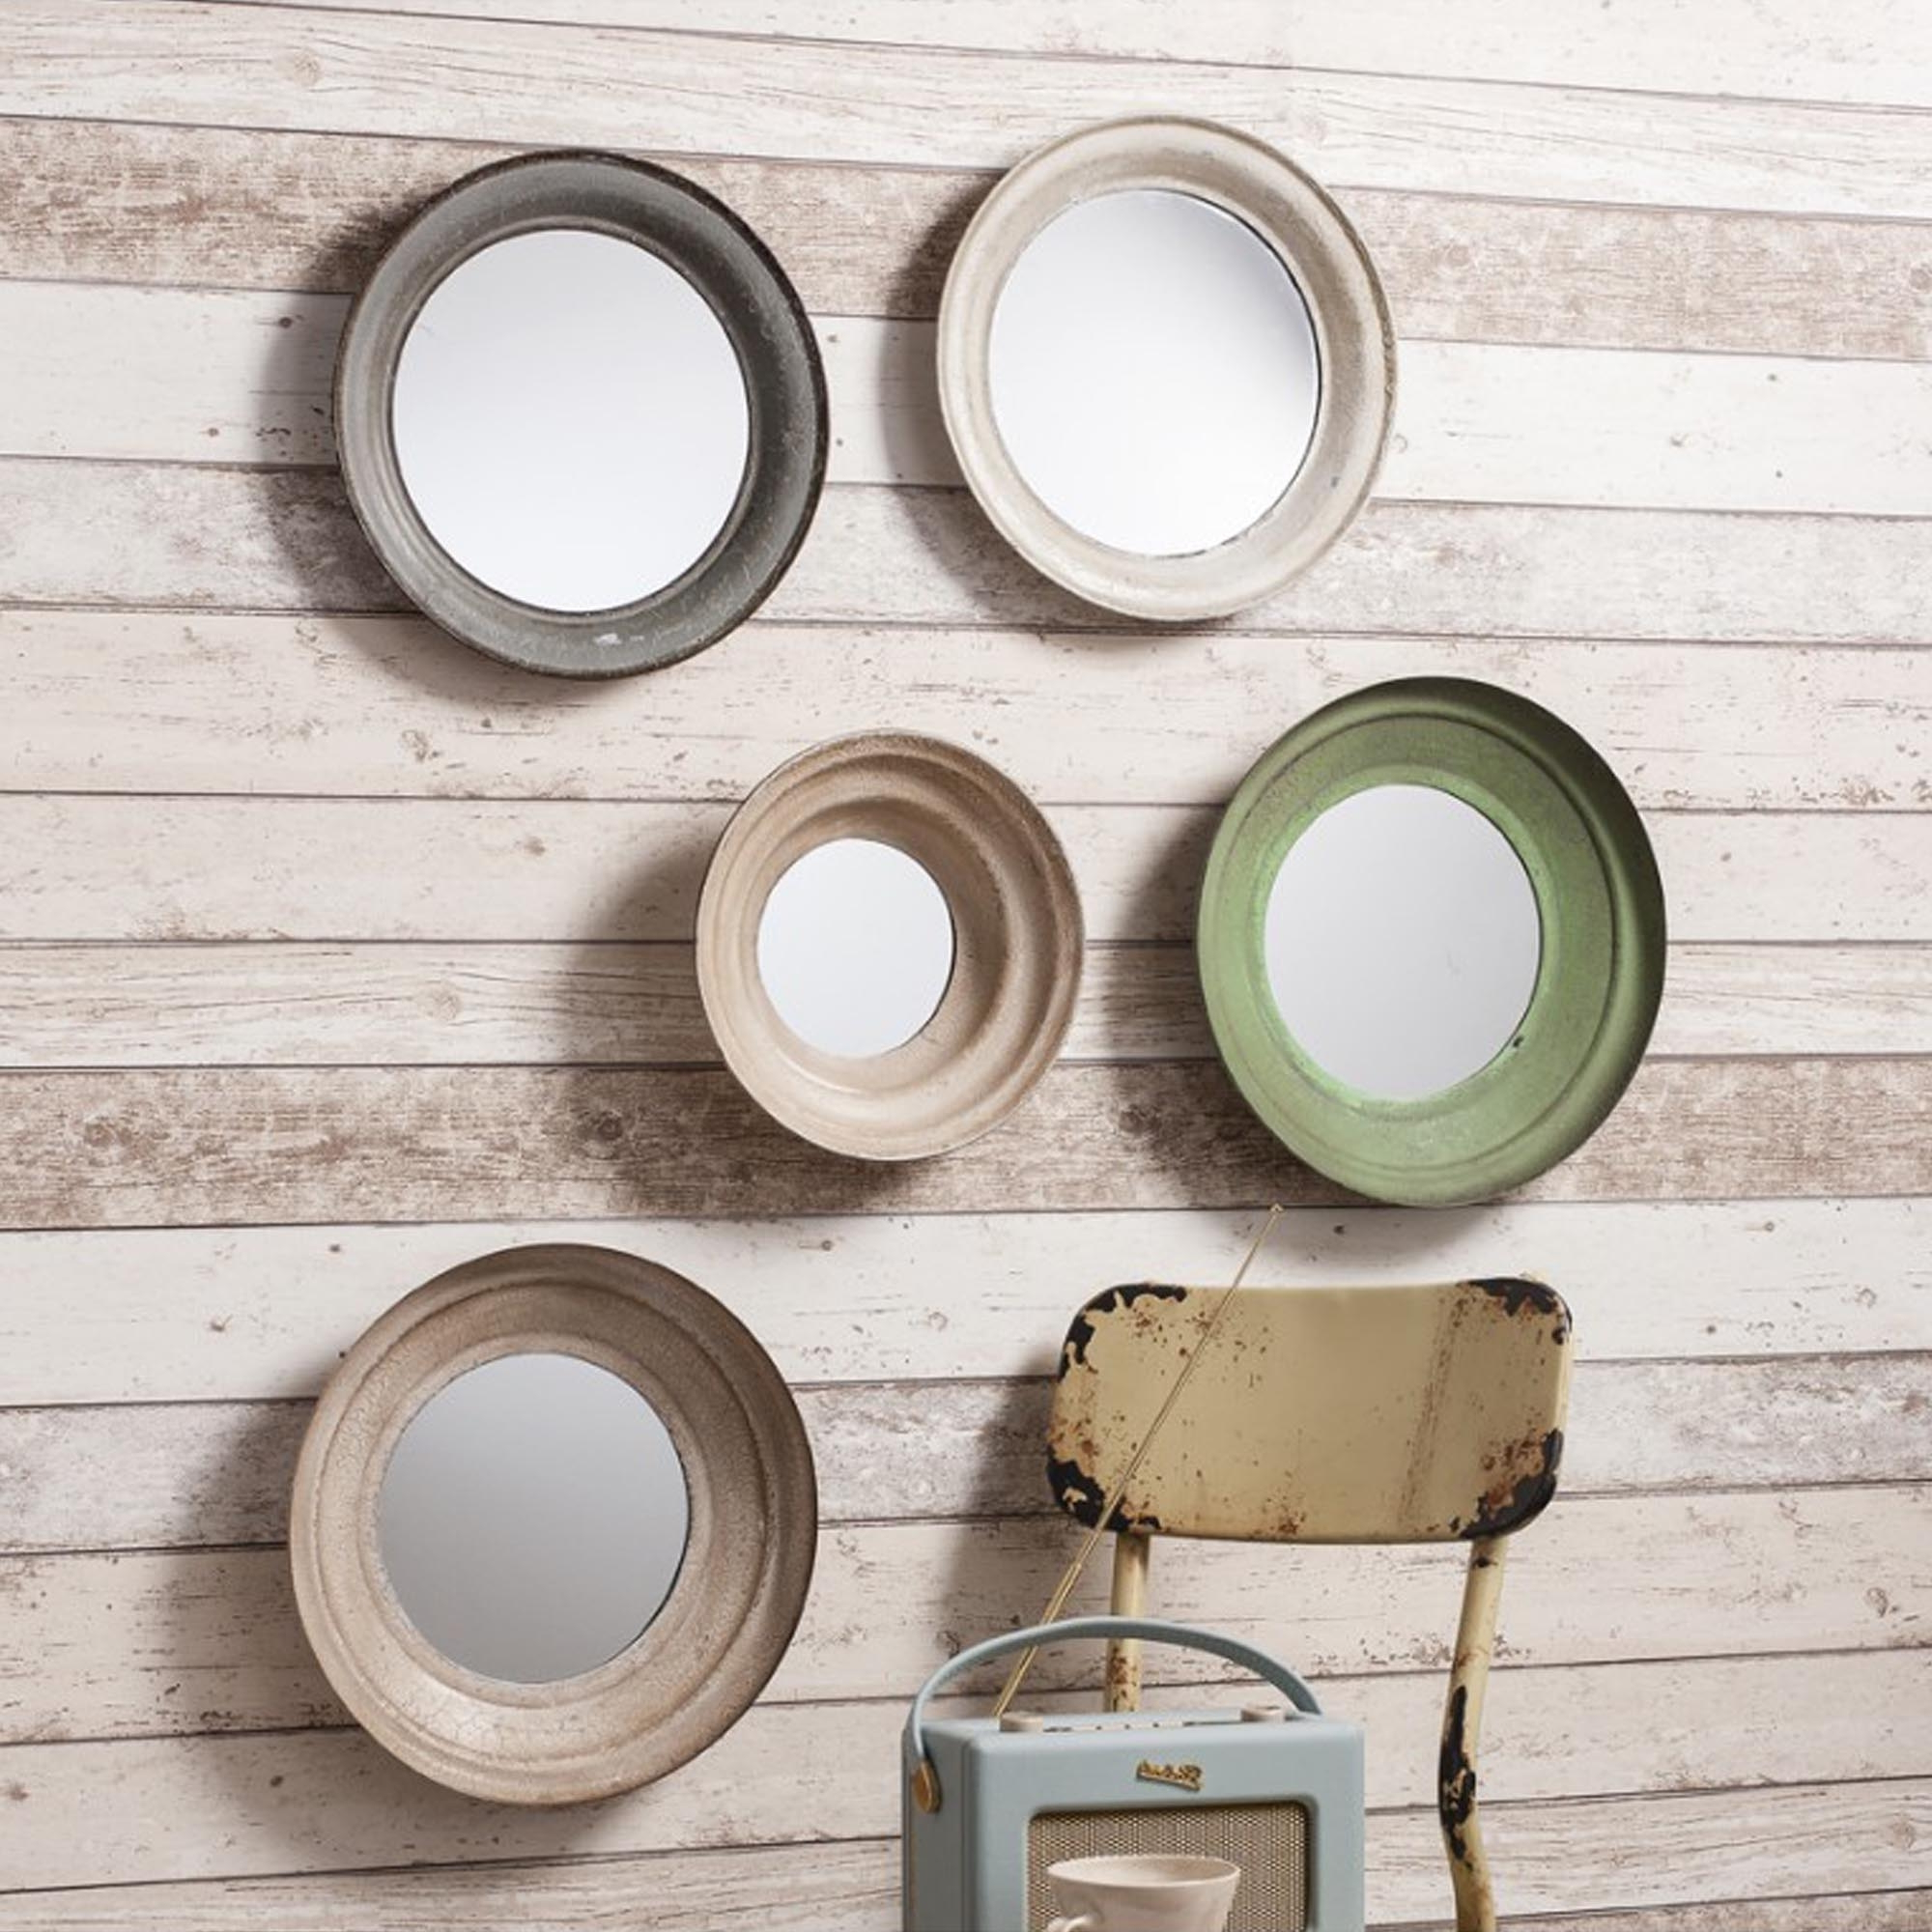 Most Recent Set Of Wall Mirrors Throughout Set Of 5 Crosby Wall Mirrors (View 5 of 20)